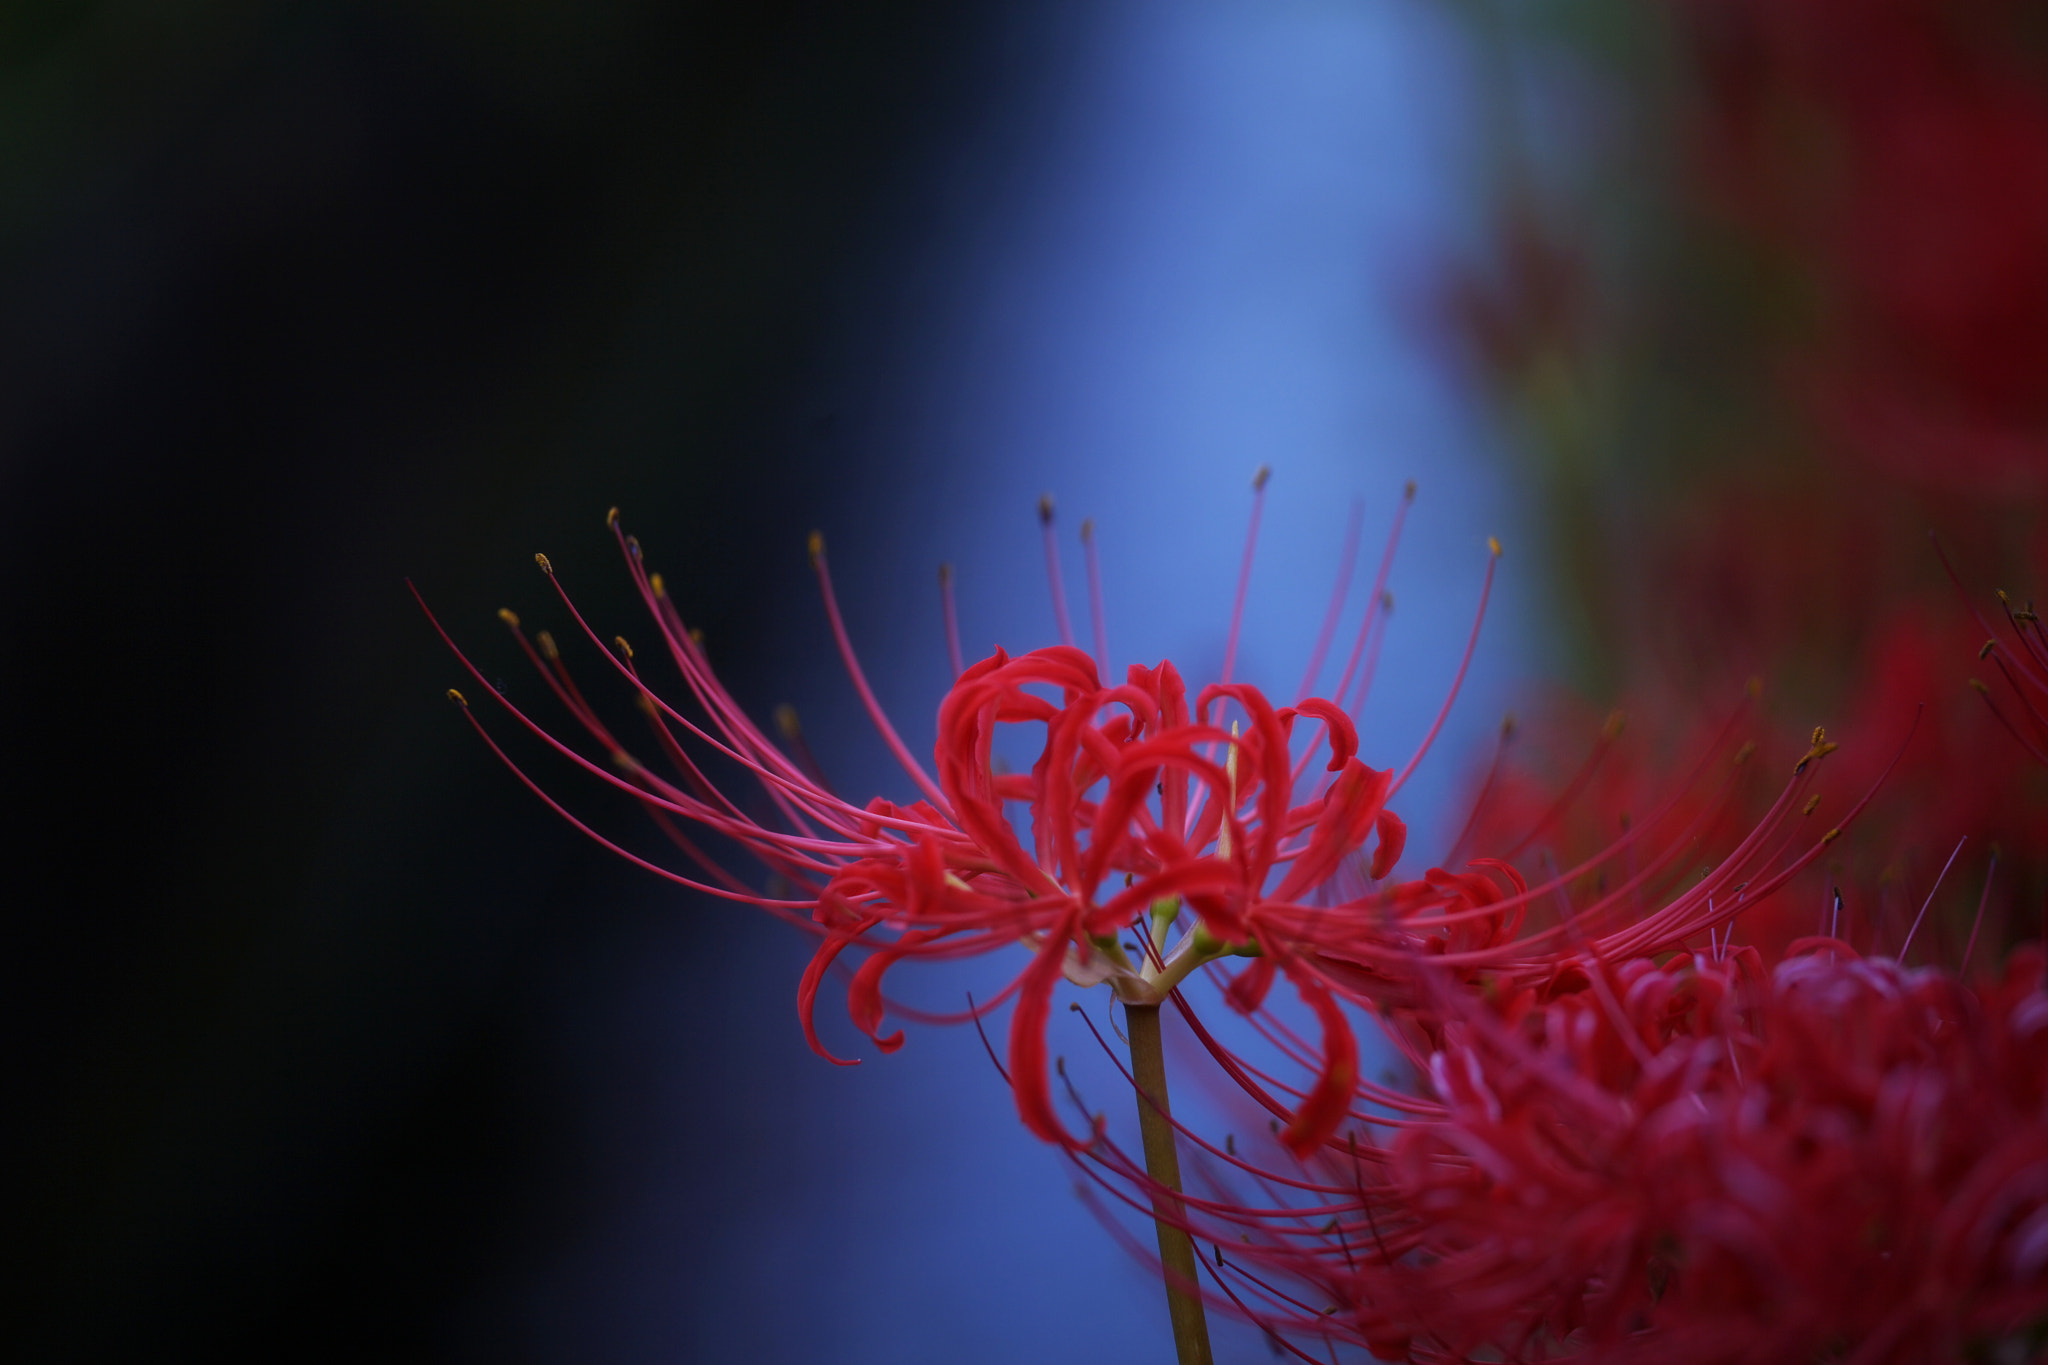 Photograph Lycoris by Tashi_Delek Nakata on 500px